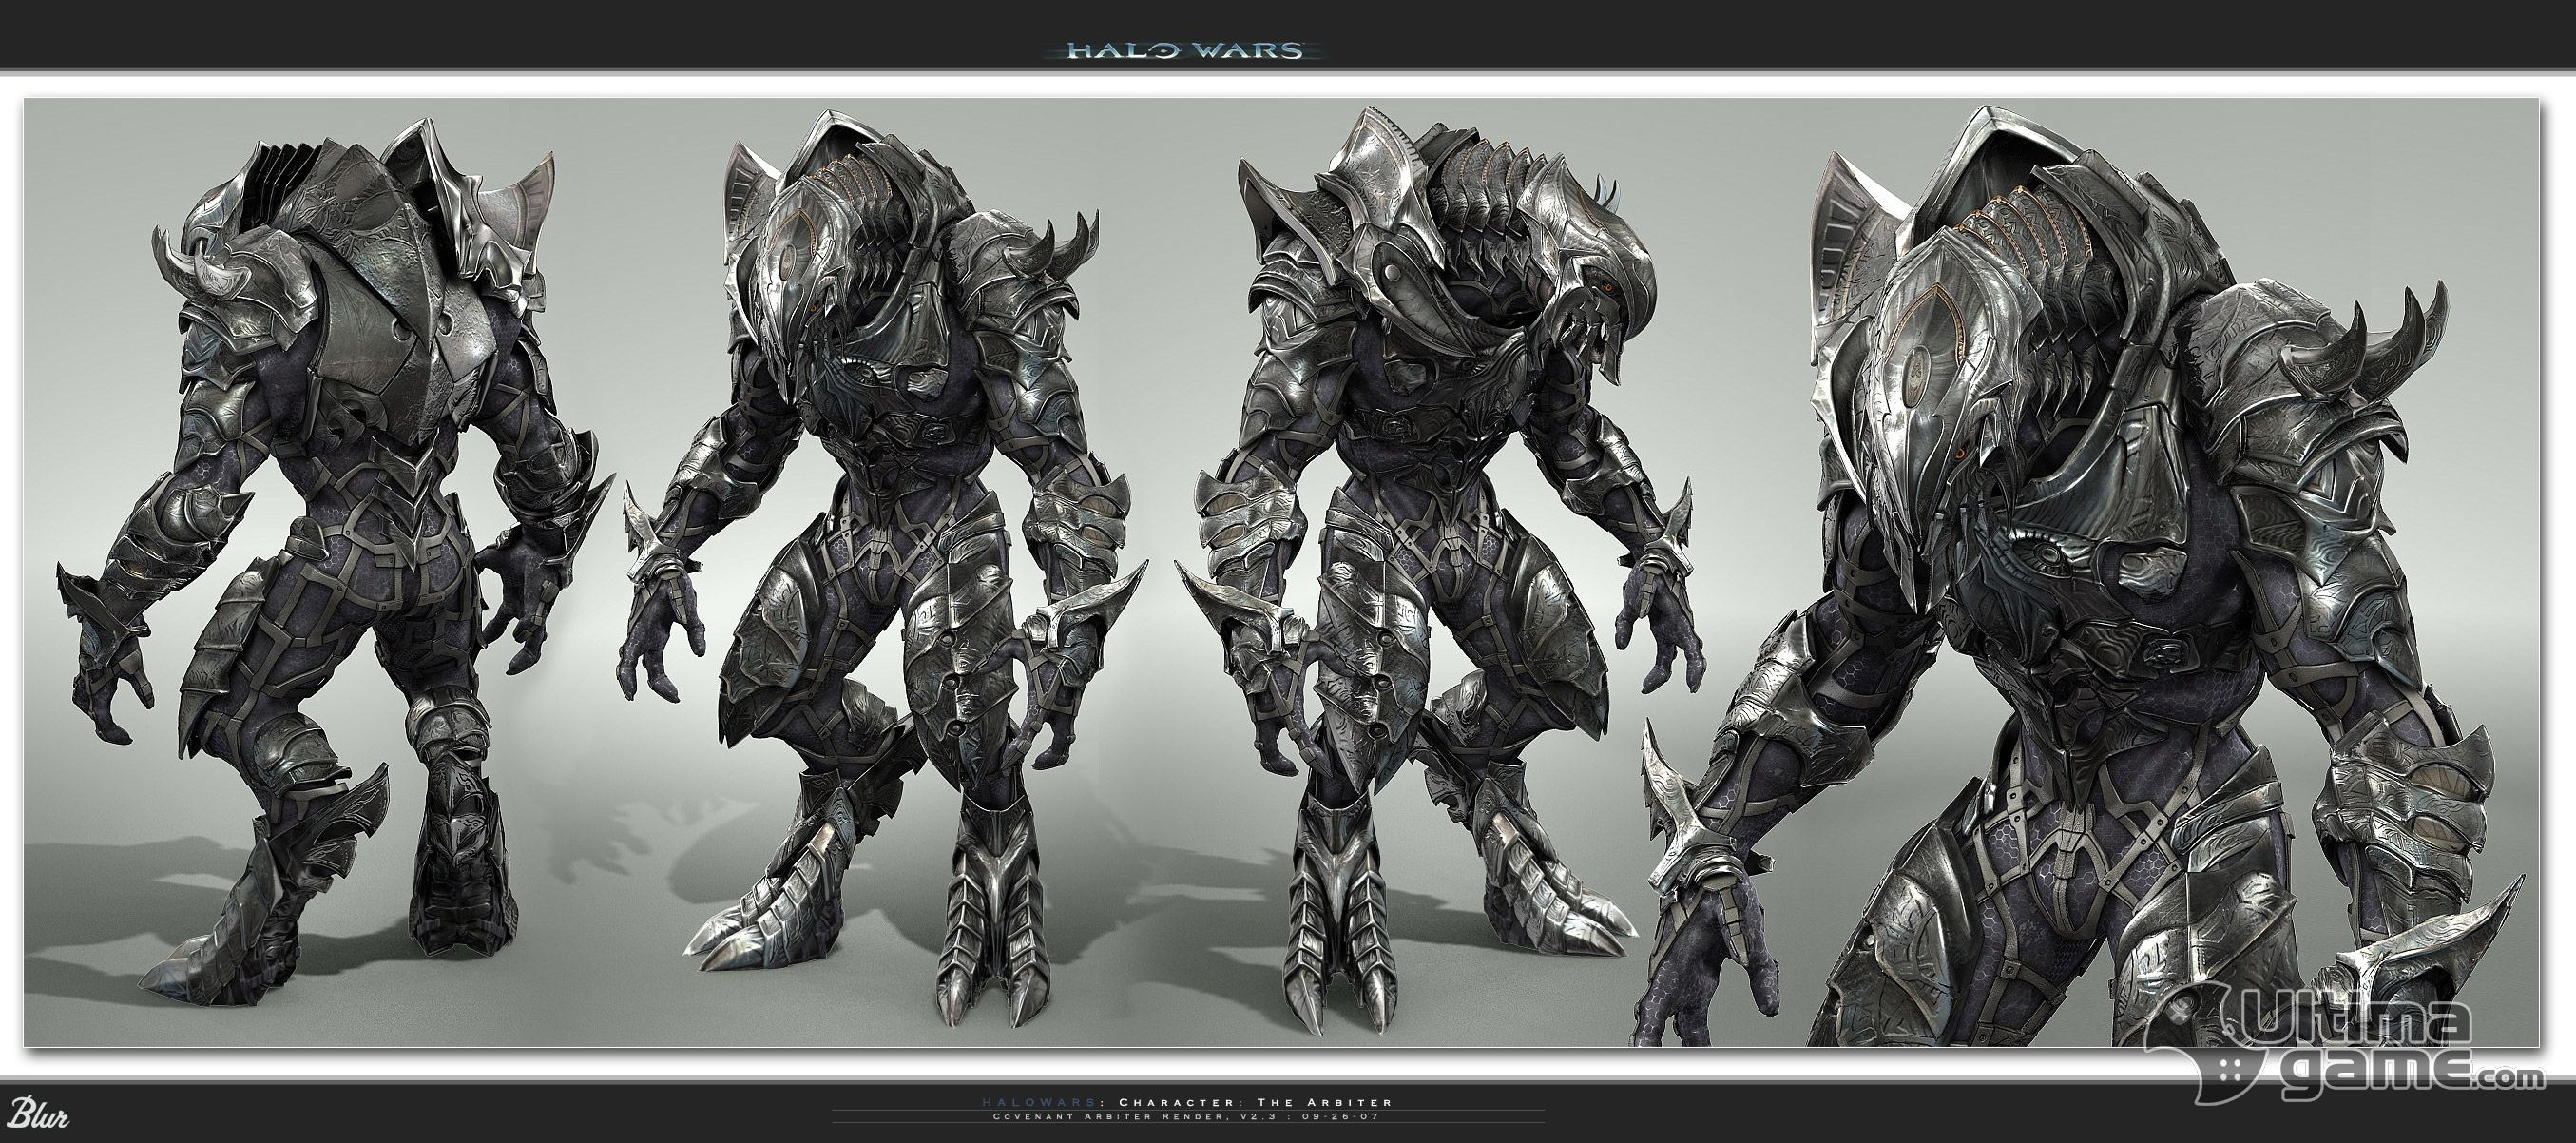 the early arbiter design from halo wars looks a lot like the arbiter